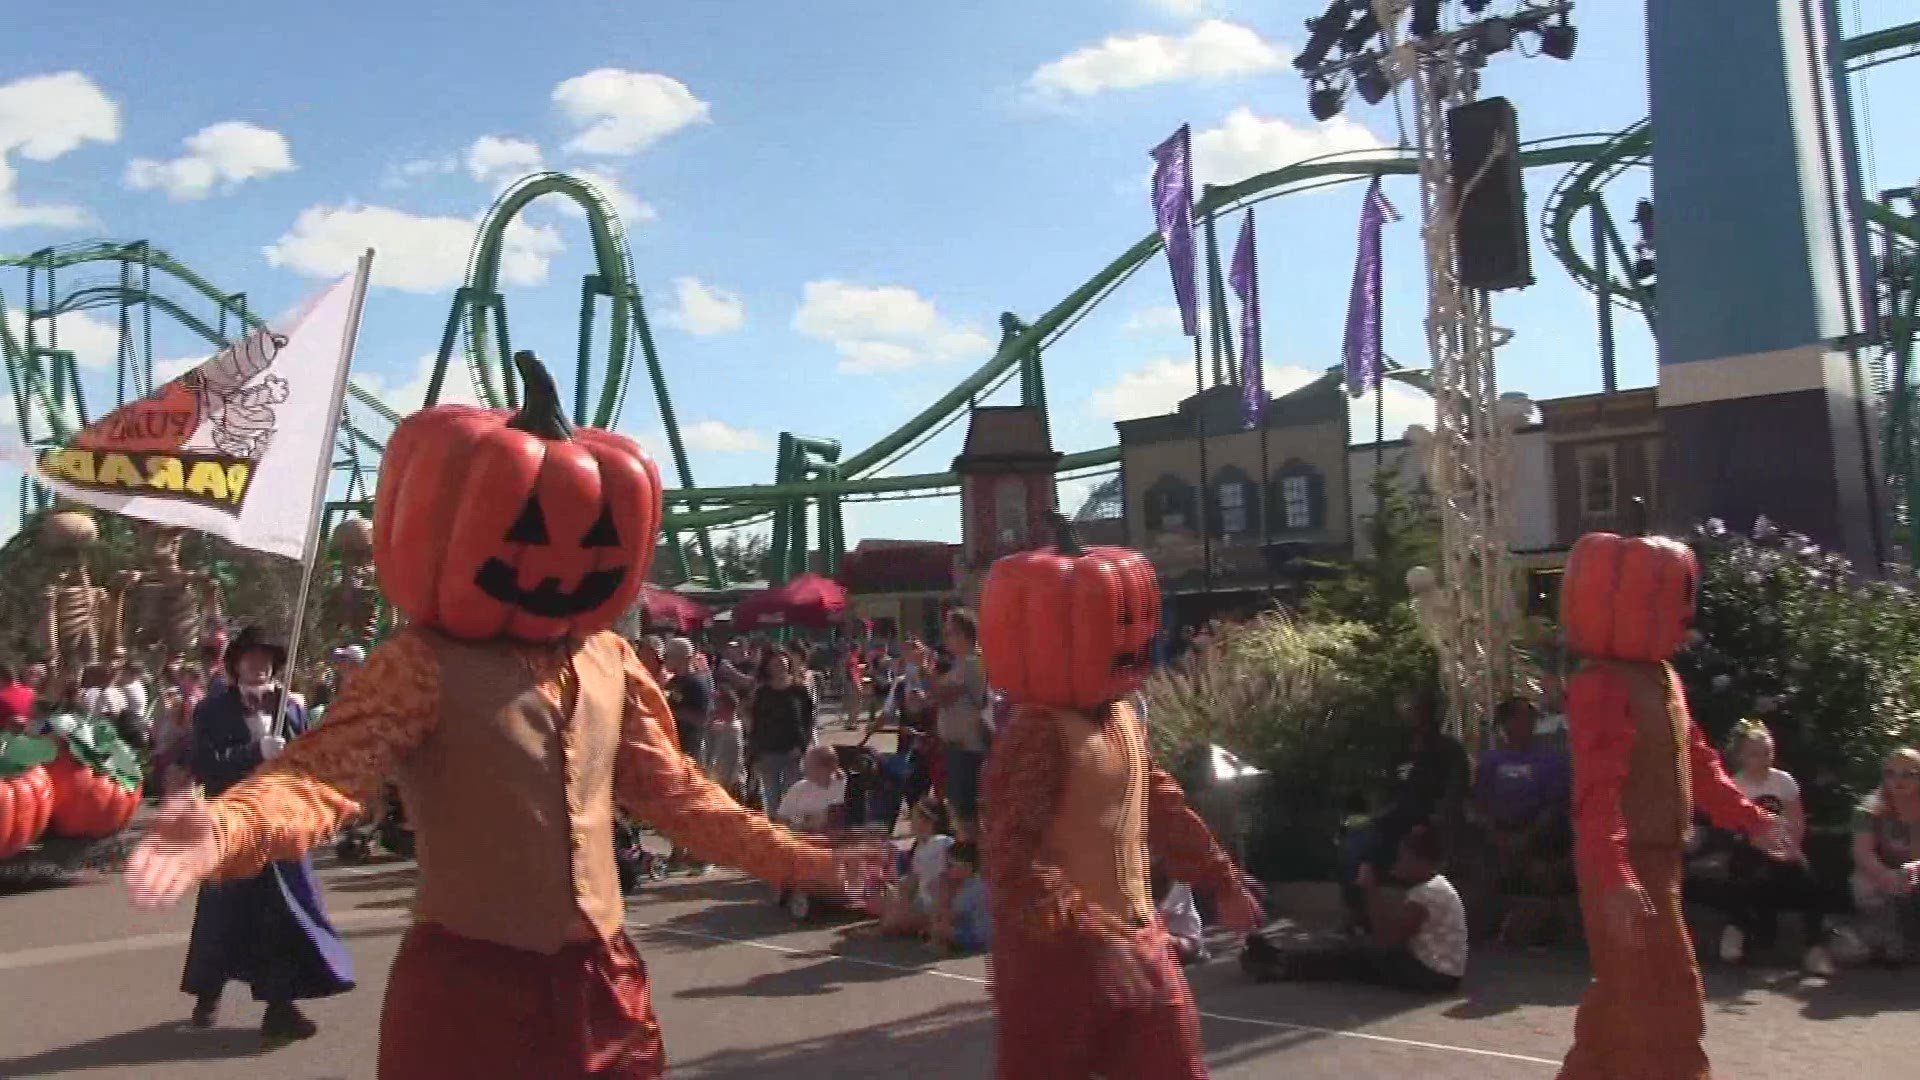 Events In Cleveland Ohio Halloween 2020 Will Cedar Point have HalloWeekends this year? Event canceled